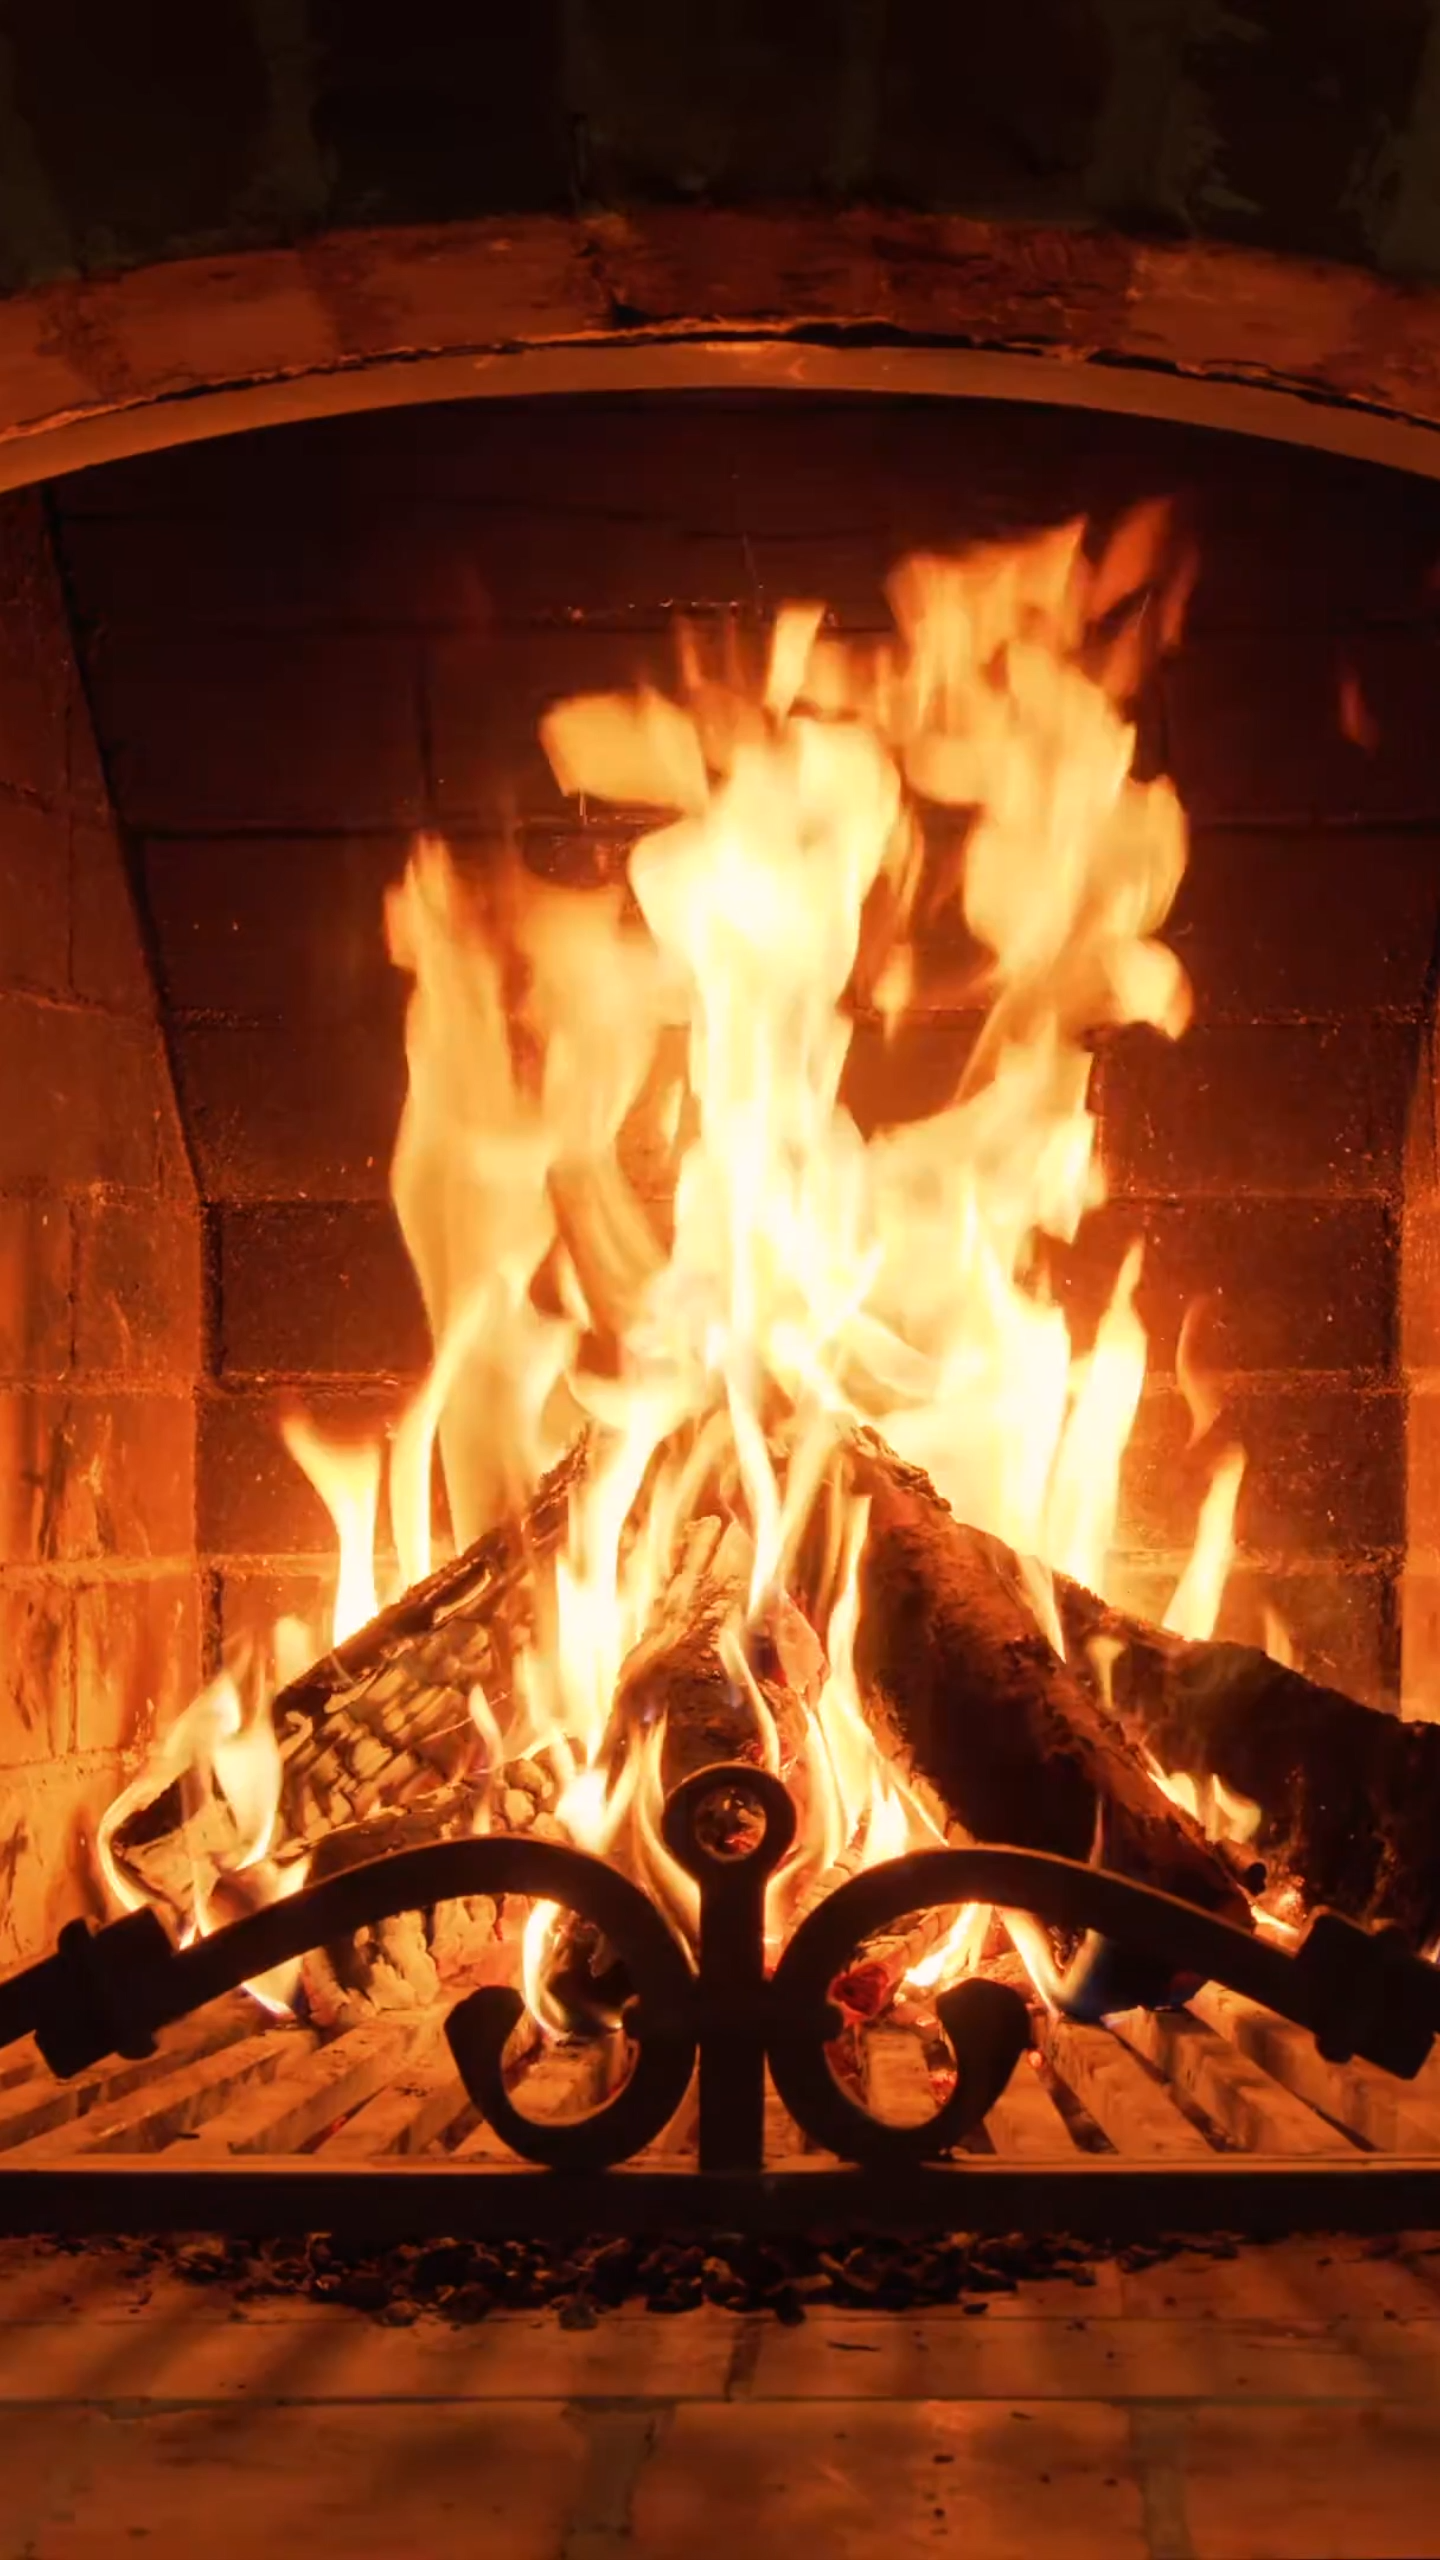 Fireplaces 4K Live Wallpapers